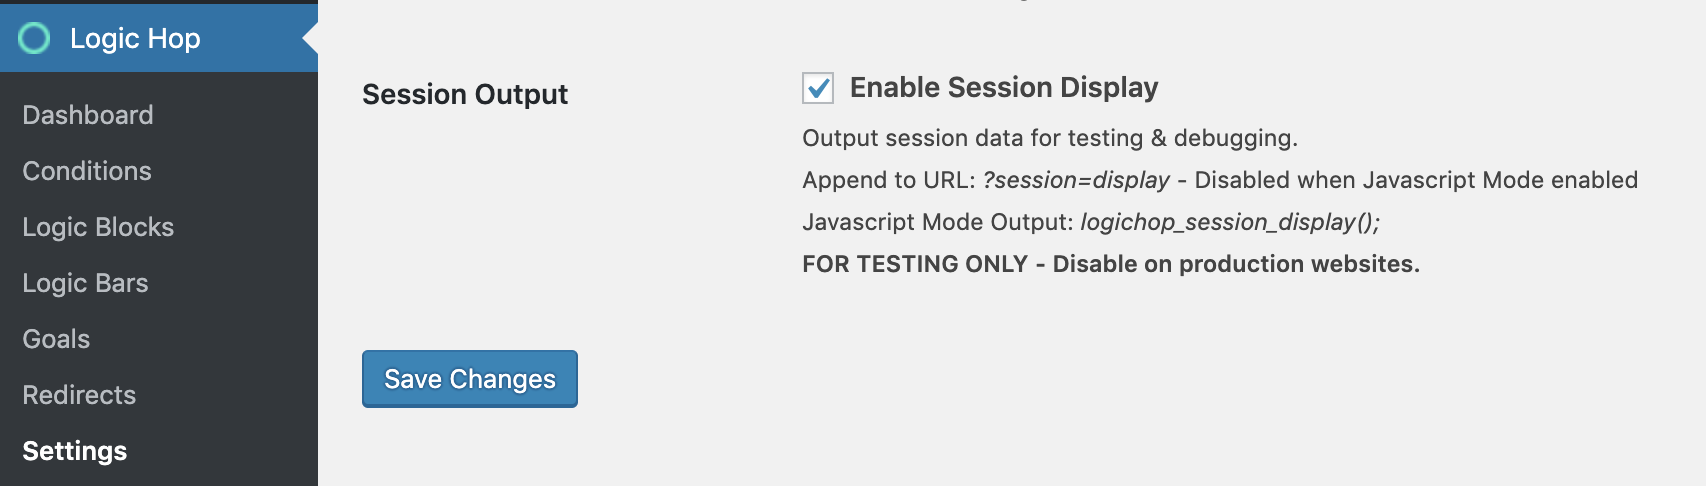 Session Output Enabled